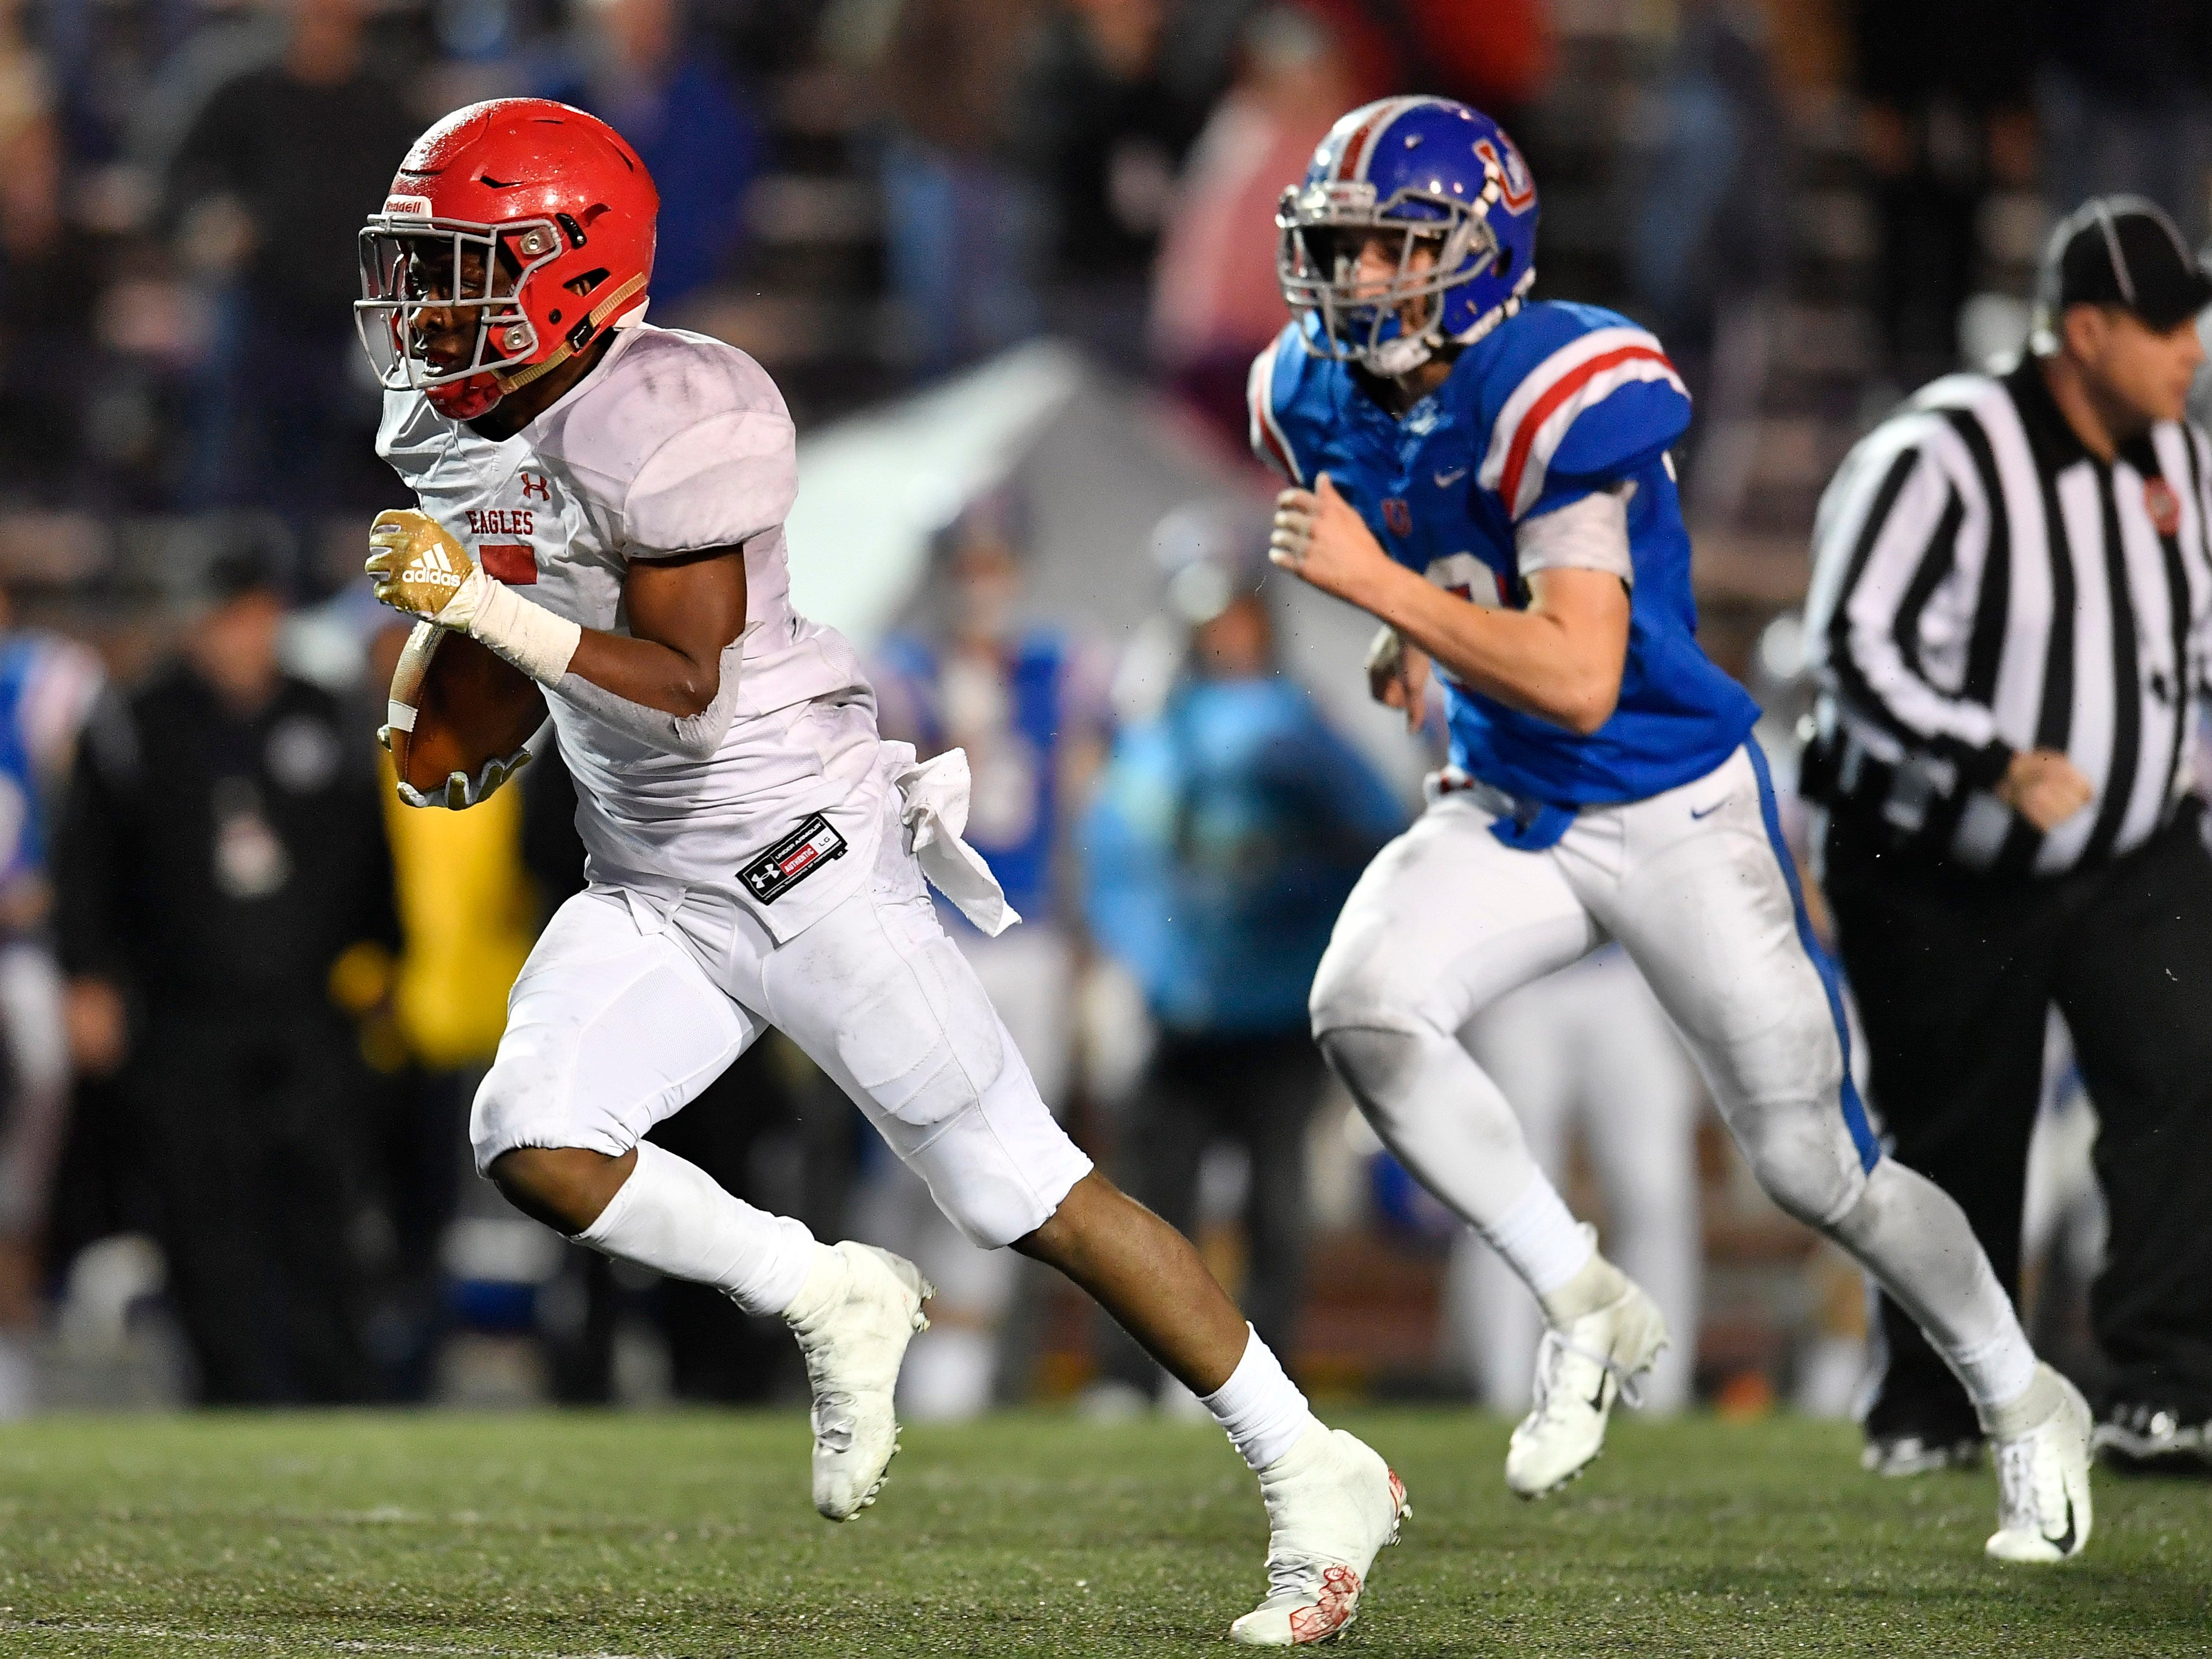 Brentwood Acad. running back Tomario Pleasant (5) races up the field for a touchdown in the second quarter at the Division II-AAA BlueCross Bowl state championship at Tennessee Tech's Tucker Stadium in Cookeville, Tenn., on Friday, Nov. 30, 2018.